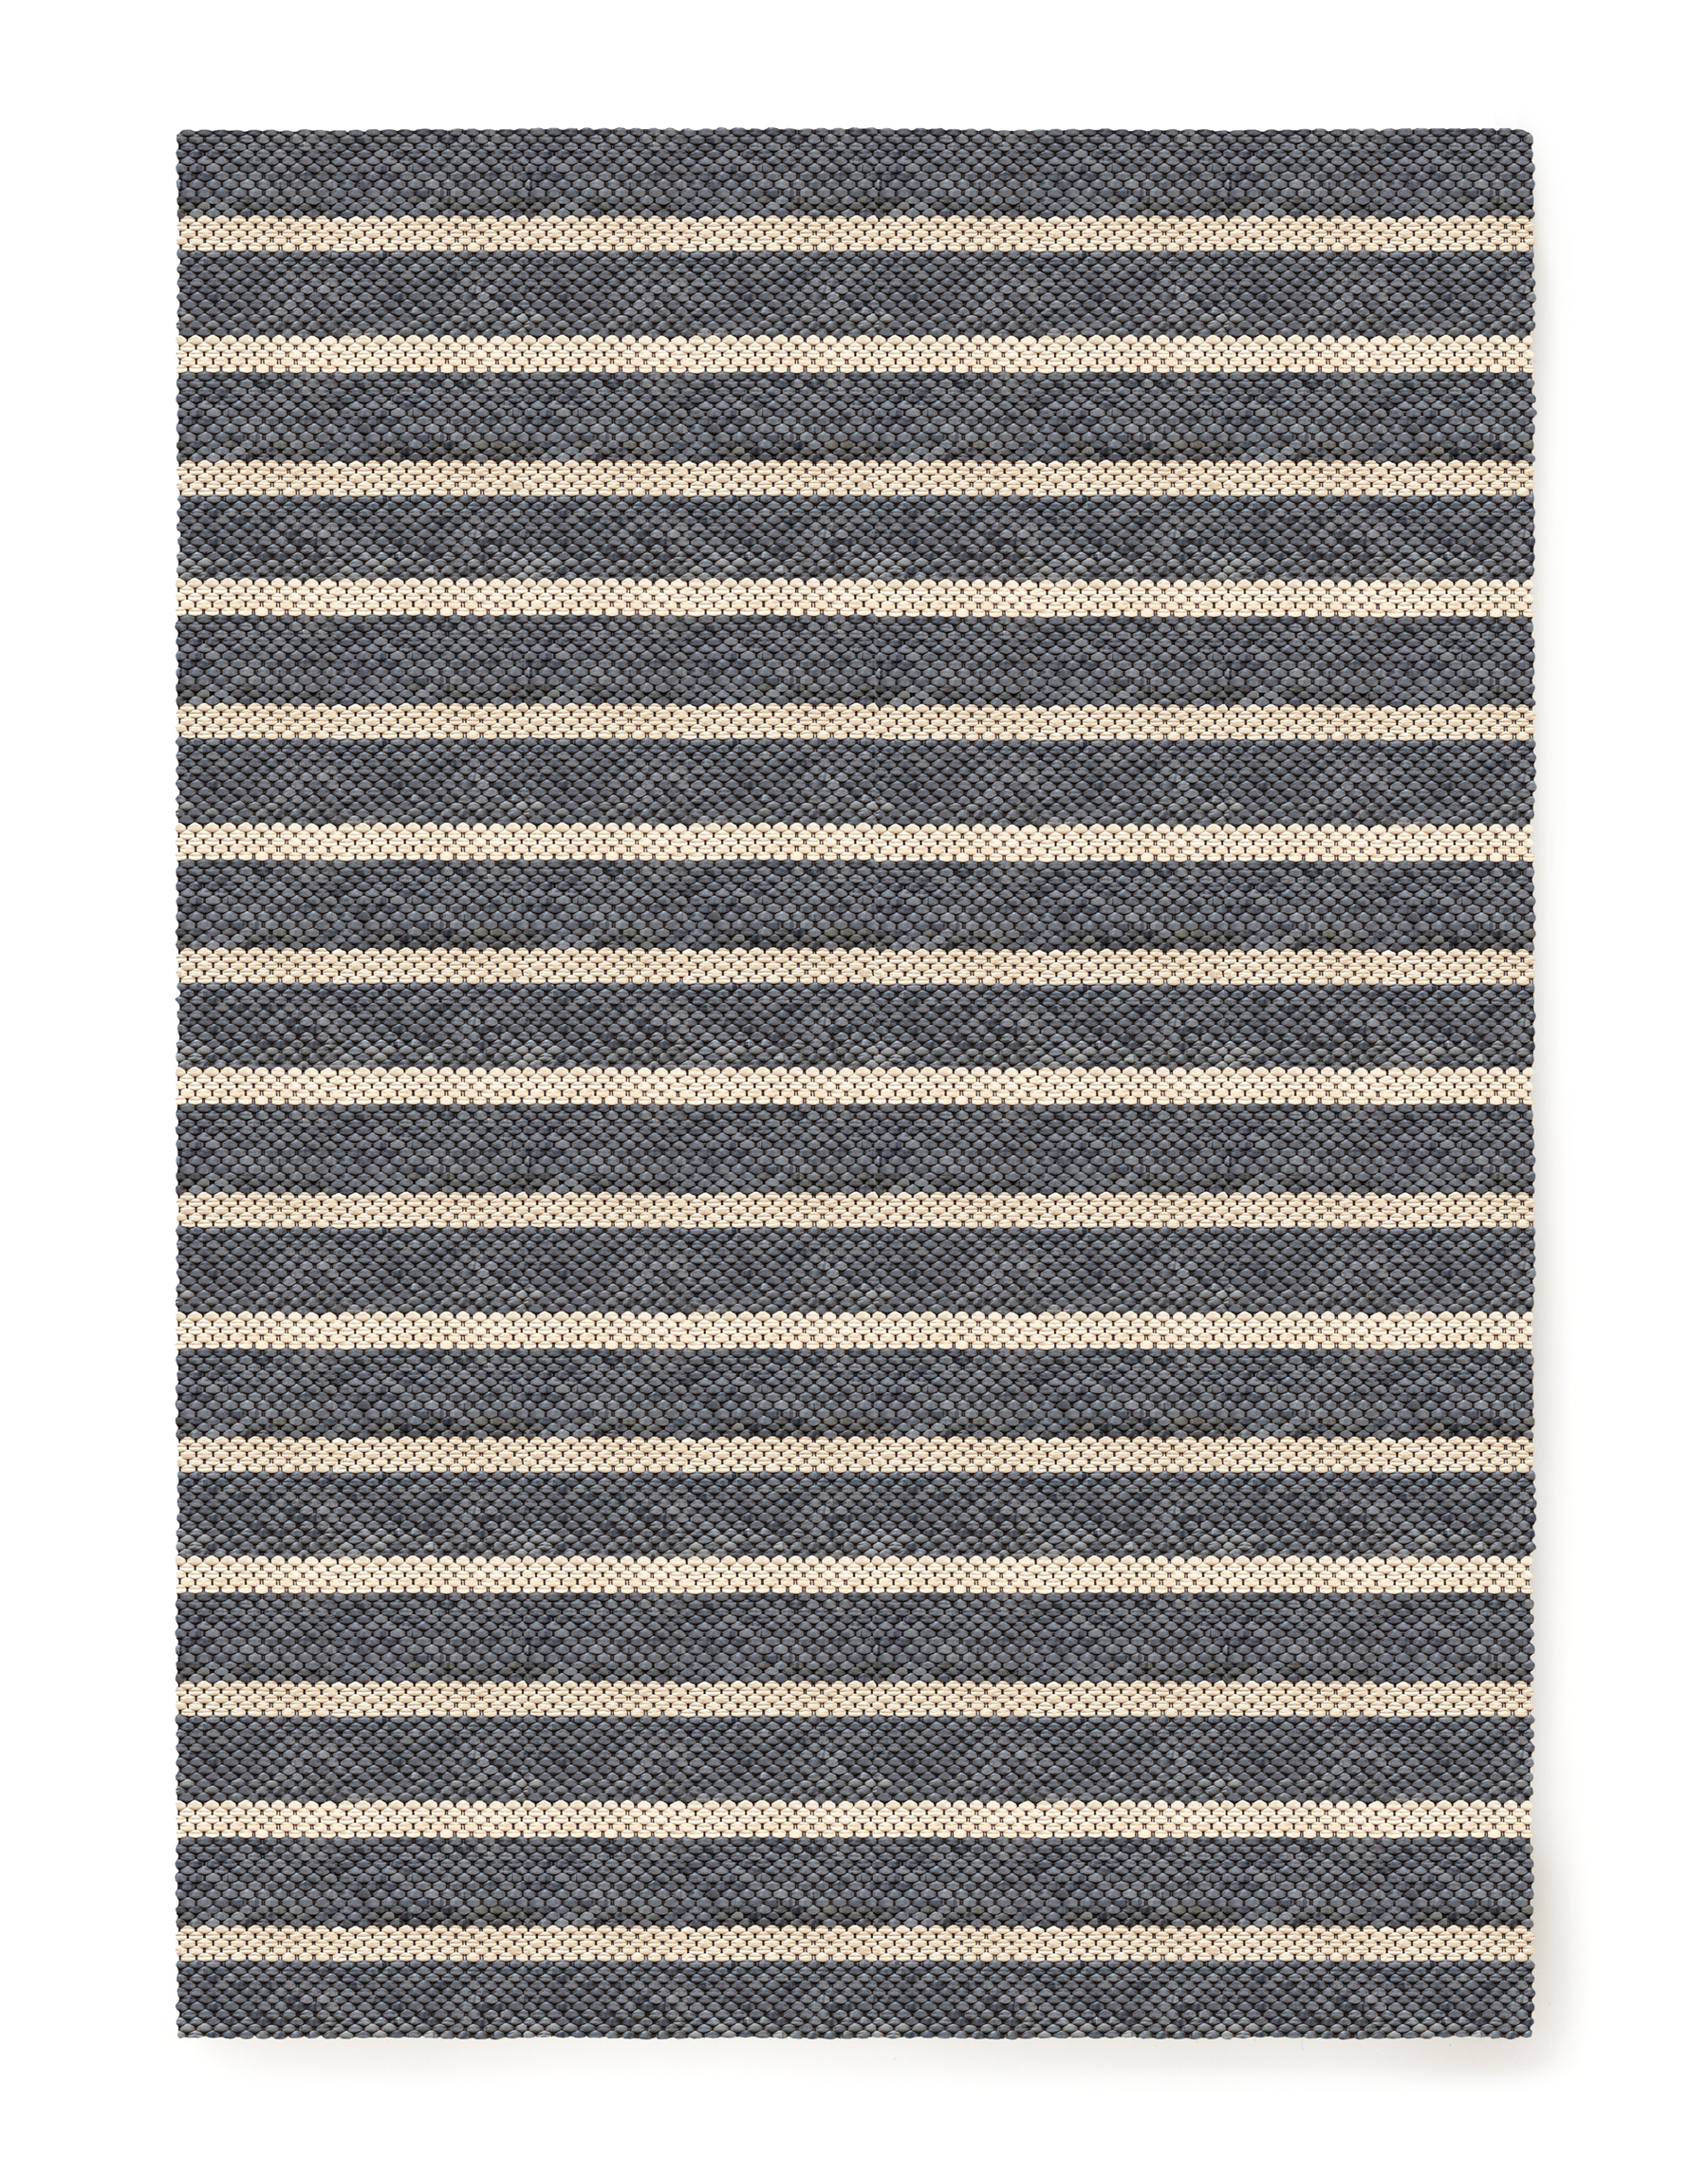 AVO_Woven-Leather-Rug_Selvage-Edge_Granite-Stripe.png